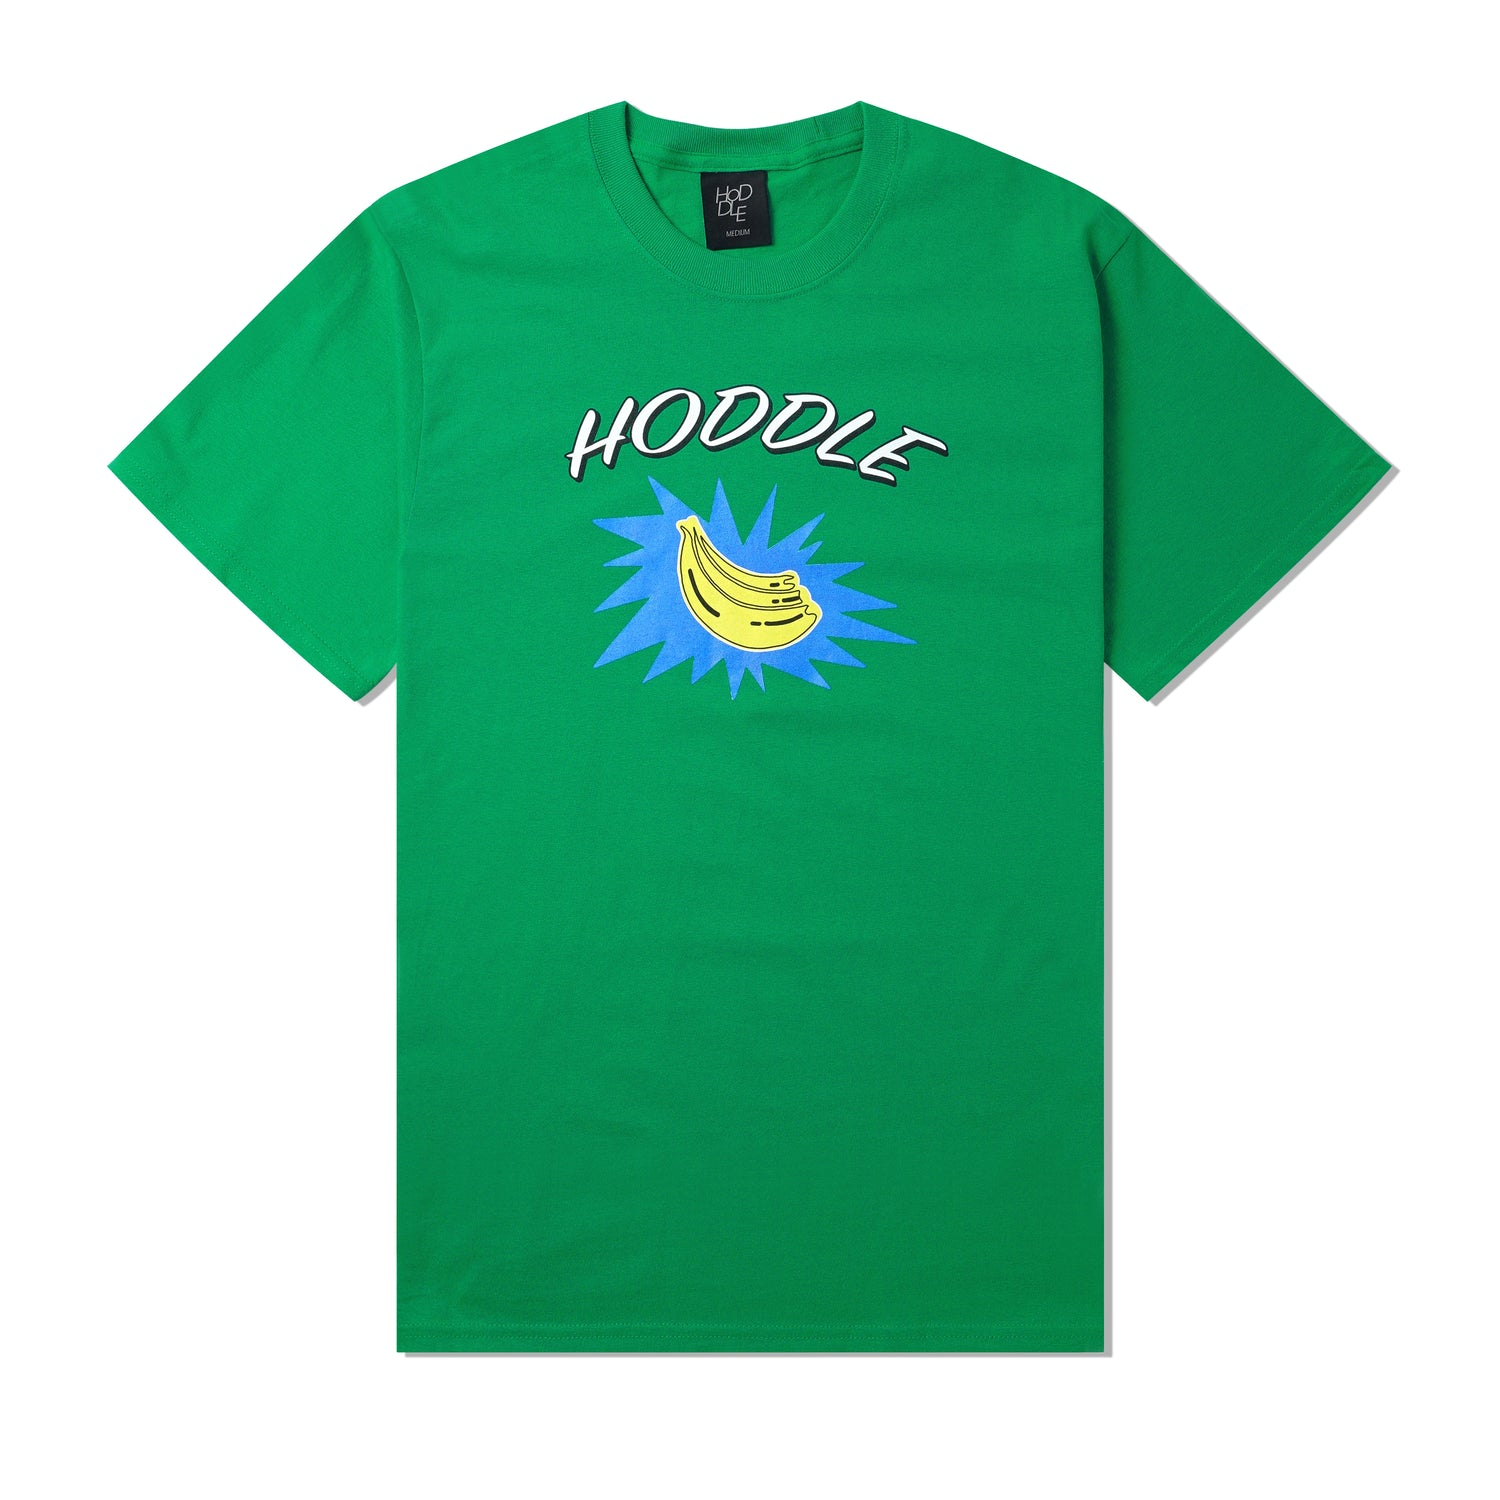 Hoddle Bananas Tee, Green